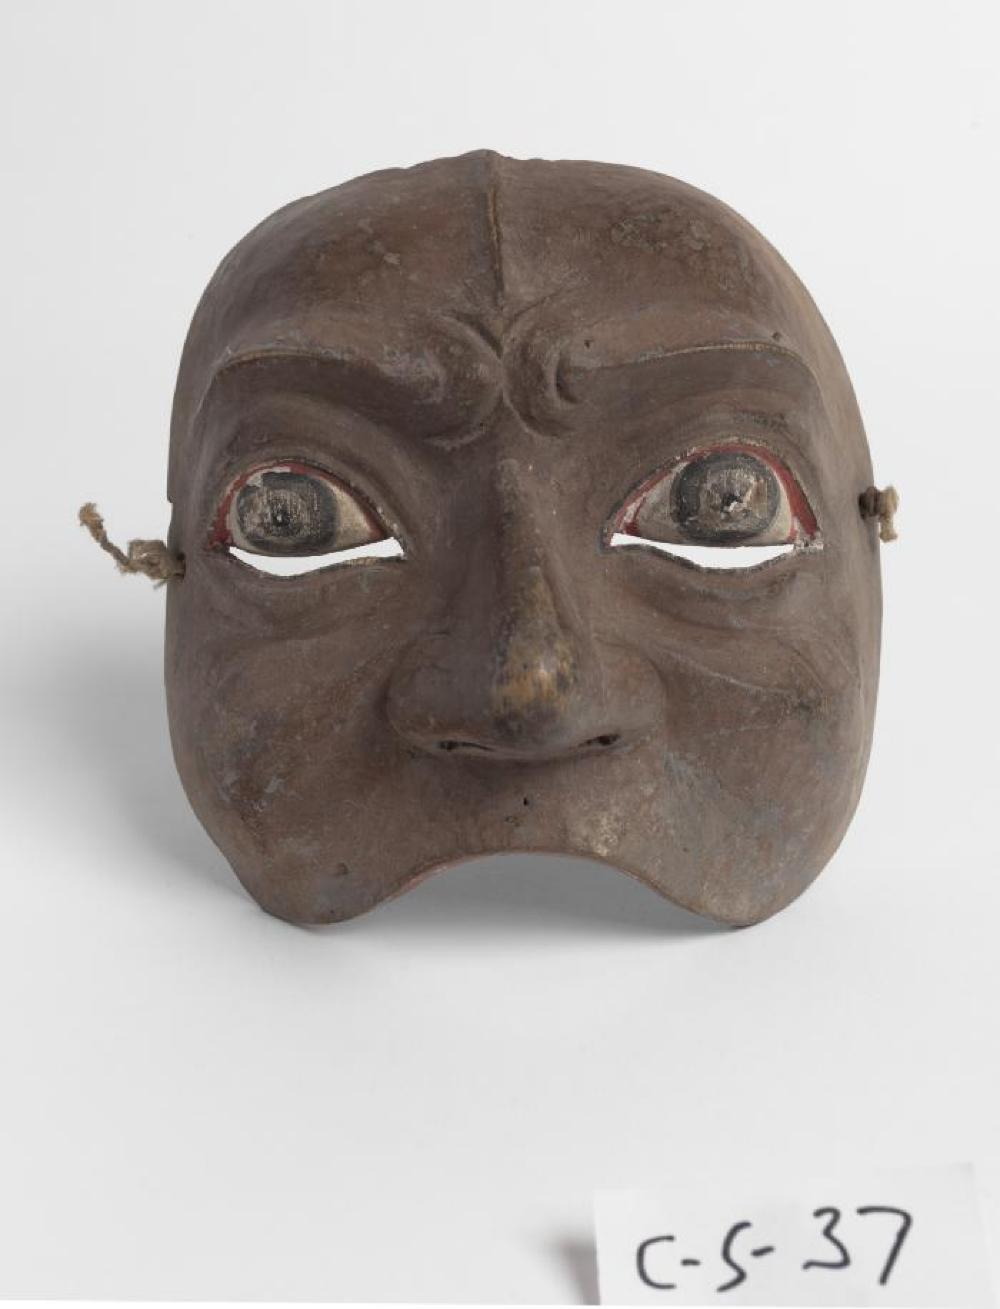 Balinese; Topeng Penasar Mask; 20th century; Painted wood; 5 1/2 x 5 5/16 x 3 in.; Collection of Isamu Noguchi. (Study Collection; Collectibles, C-S-37)